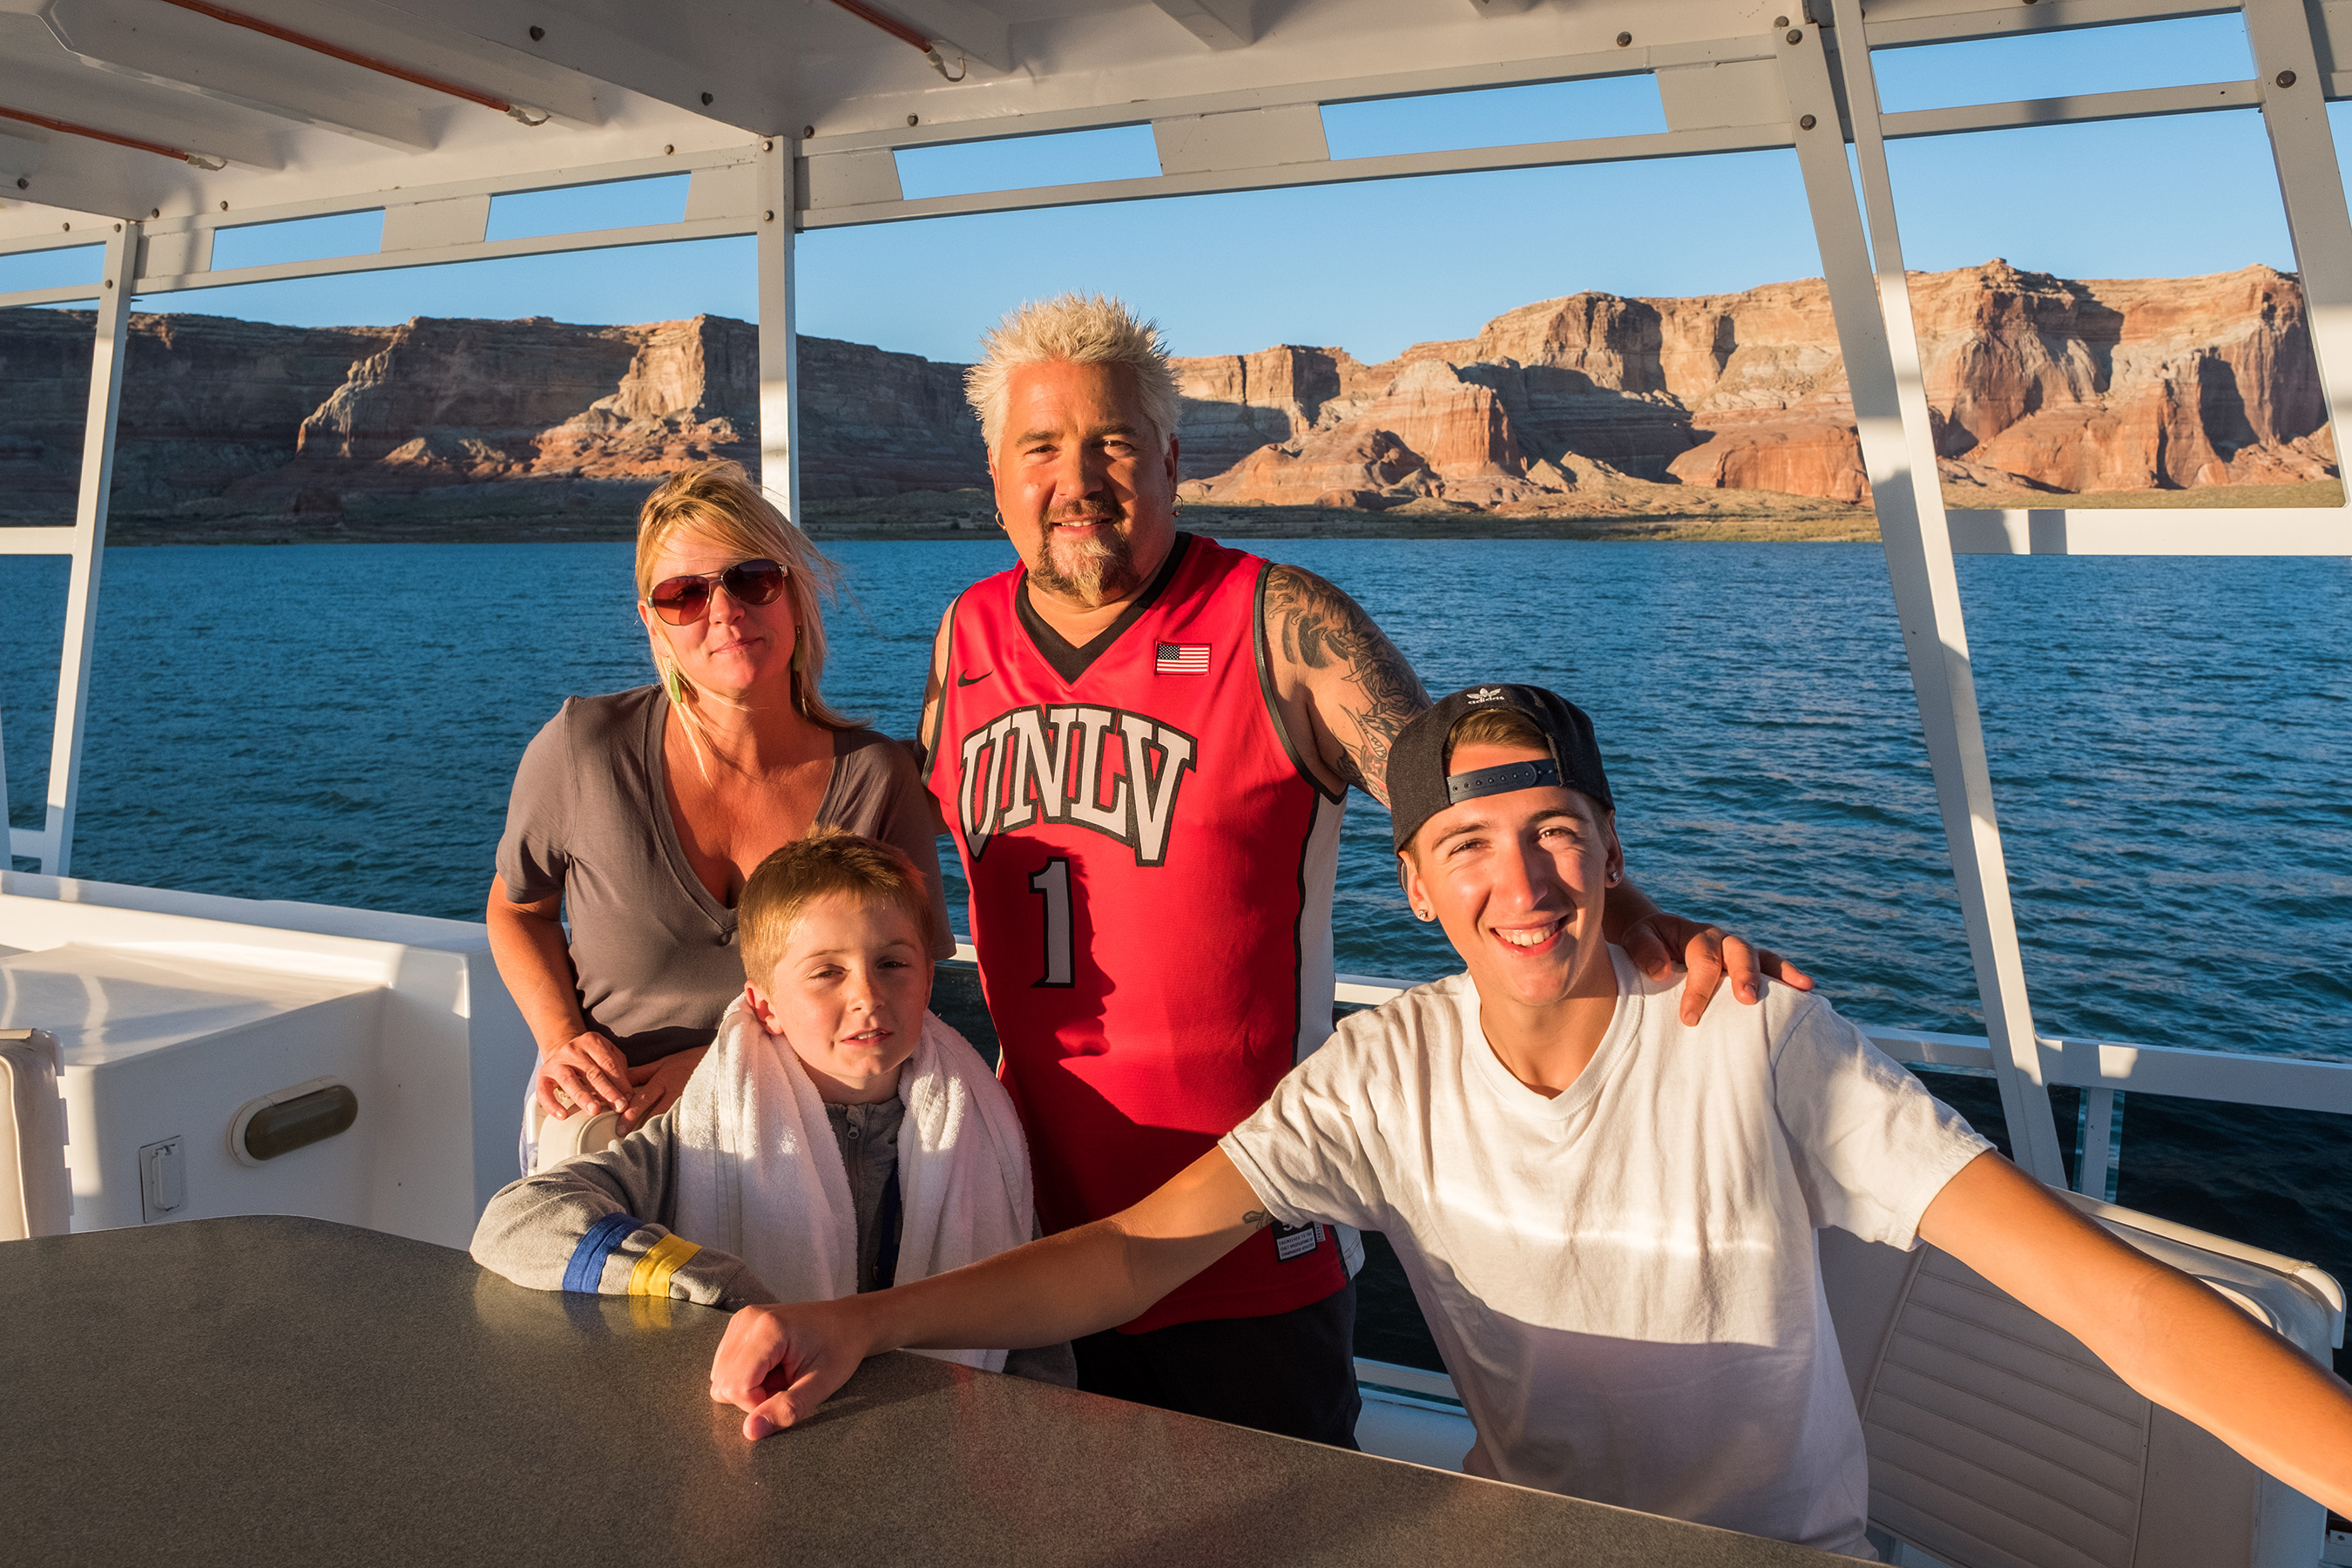 Lori, Ryder, Guy, and Hunter Fieri enjoy the boat on Lake Mead on Guy's Family Road Trip